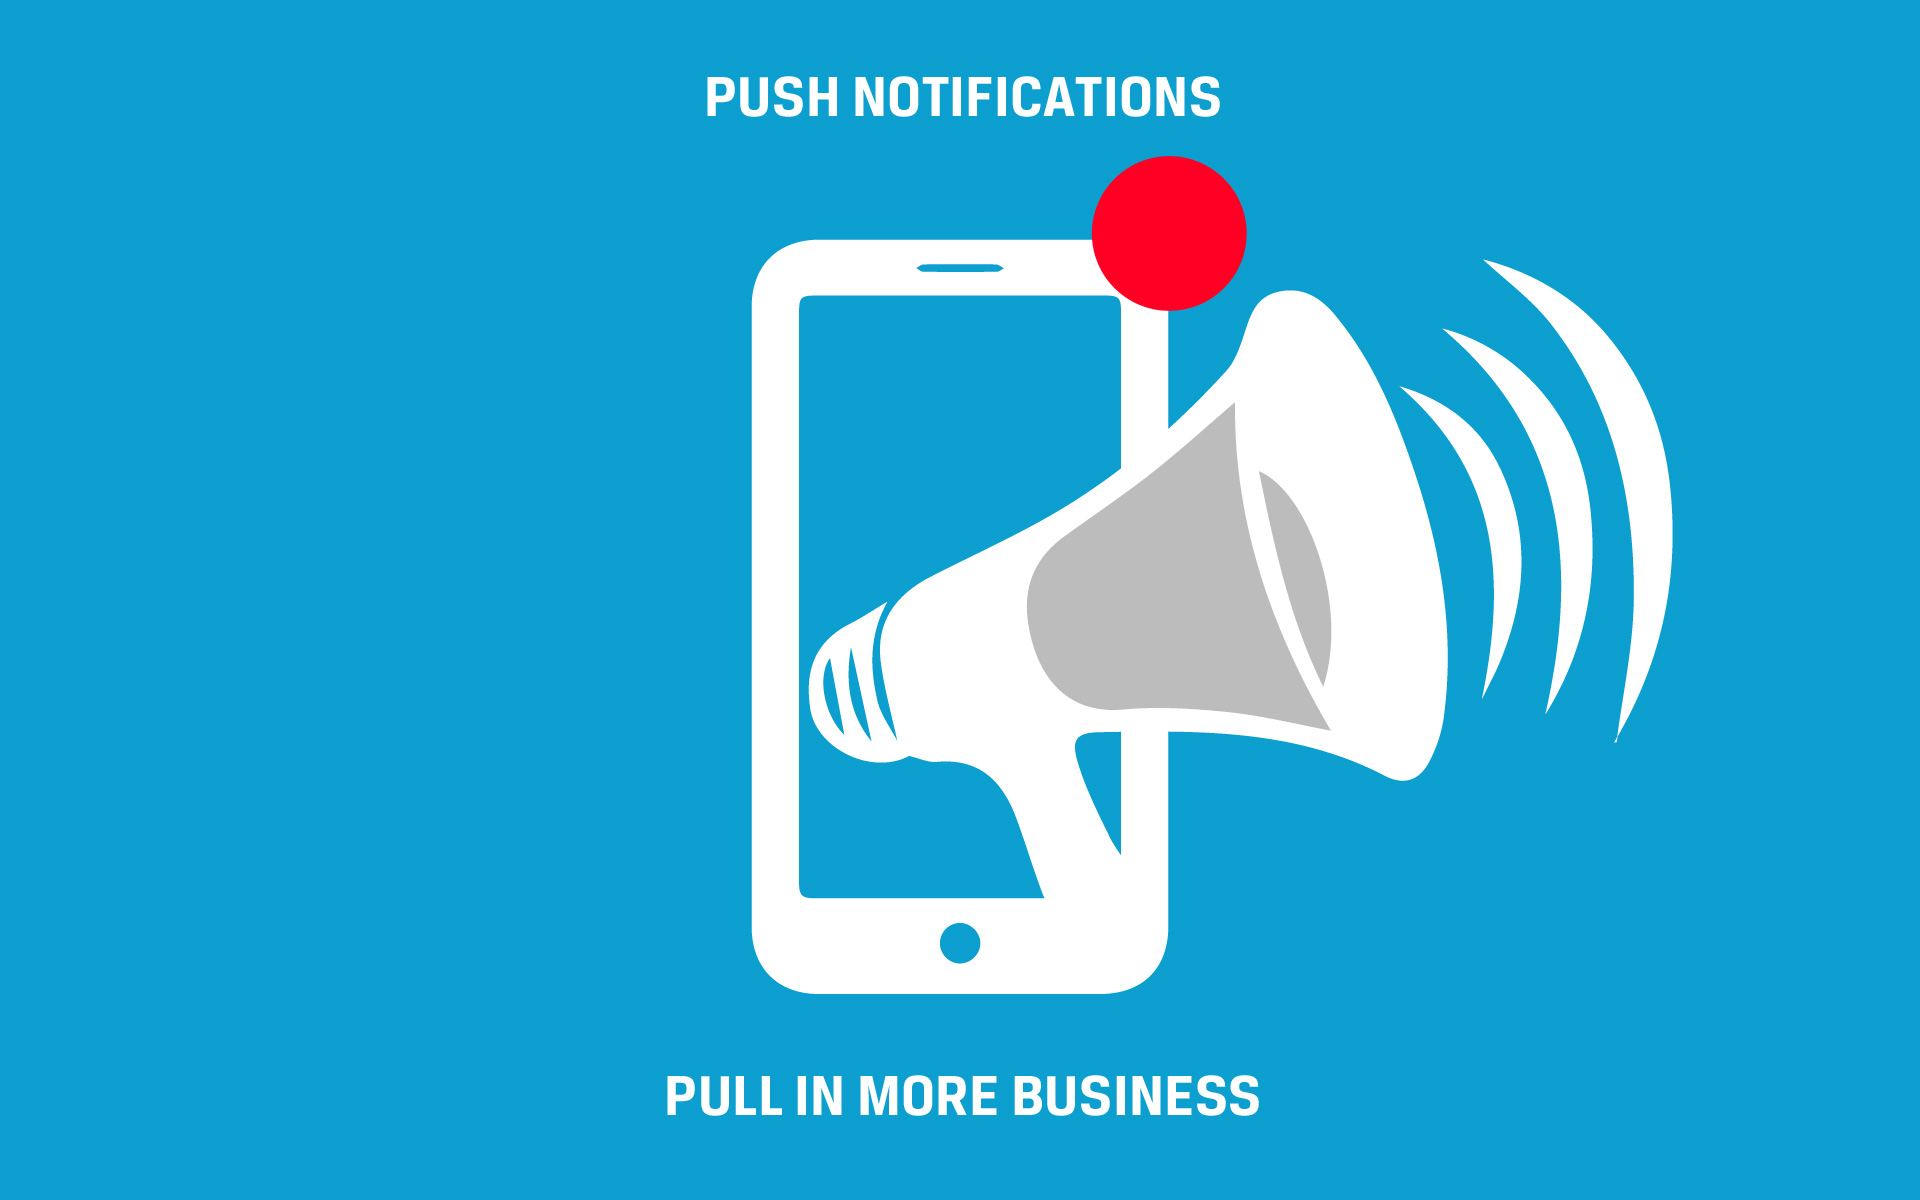 E mail vs. SMS vs. Push Notifications: Which Is More Effective?